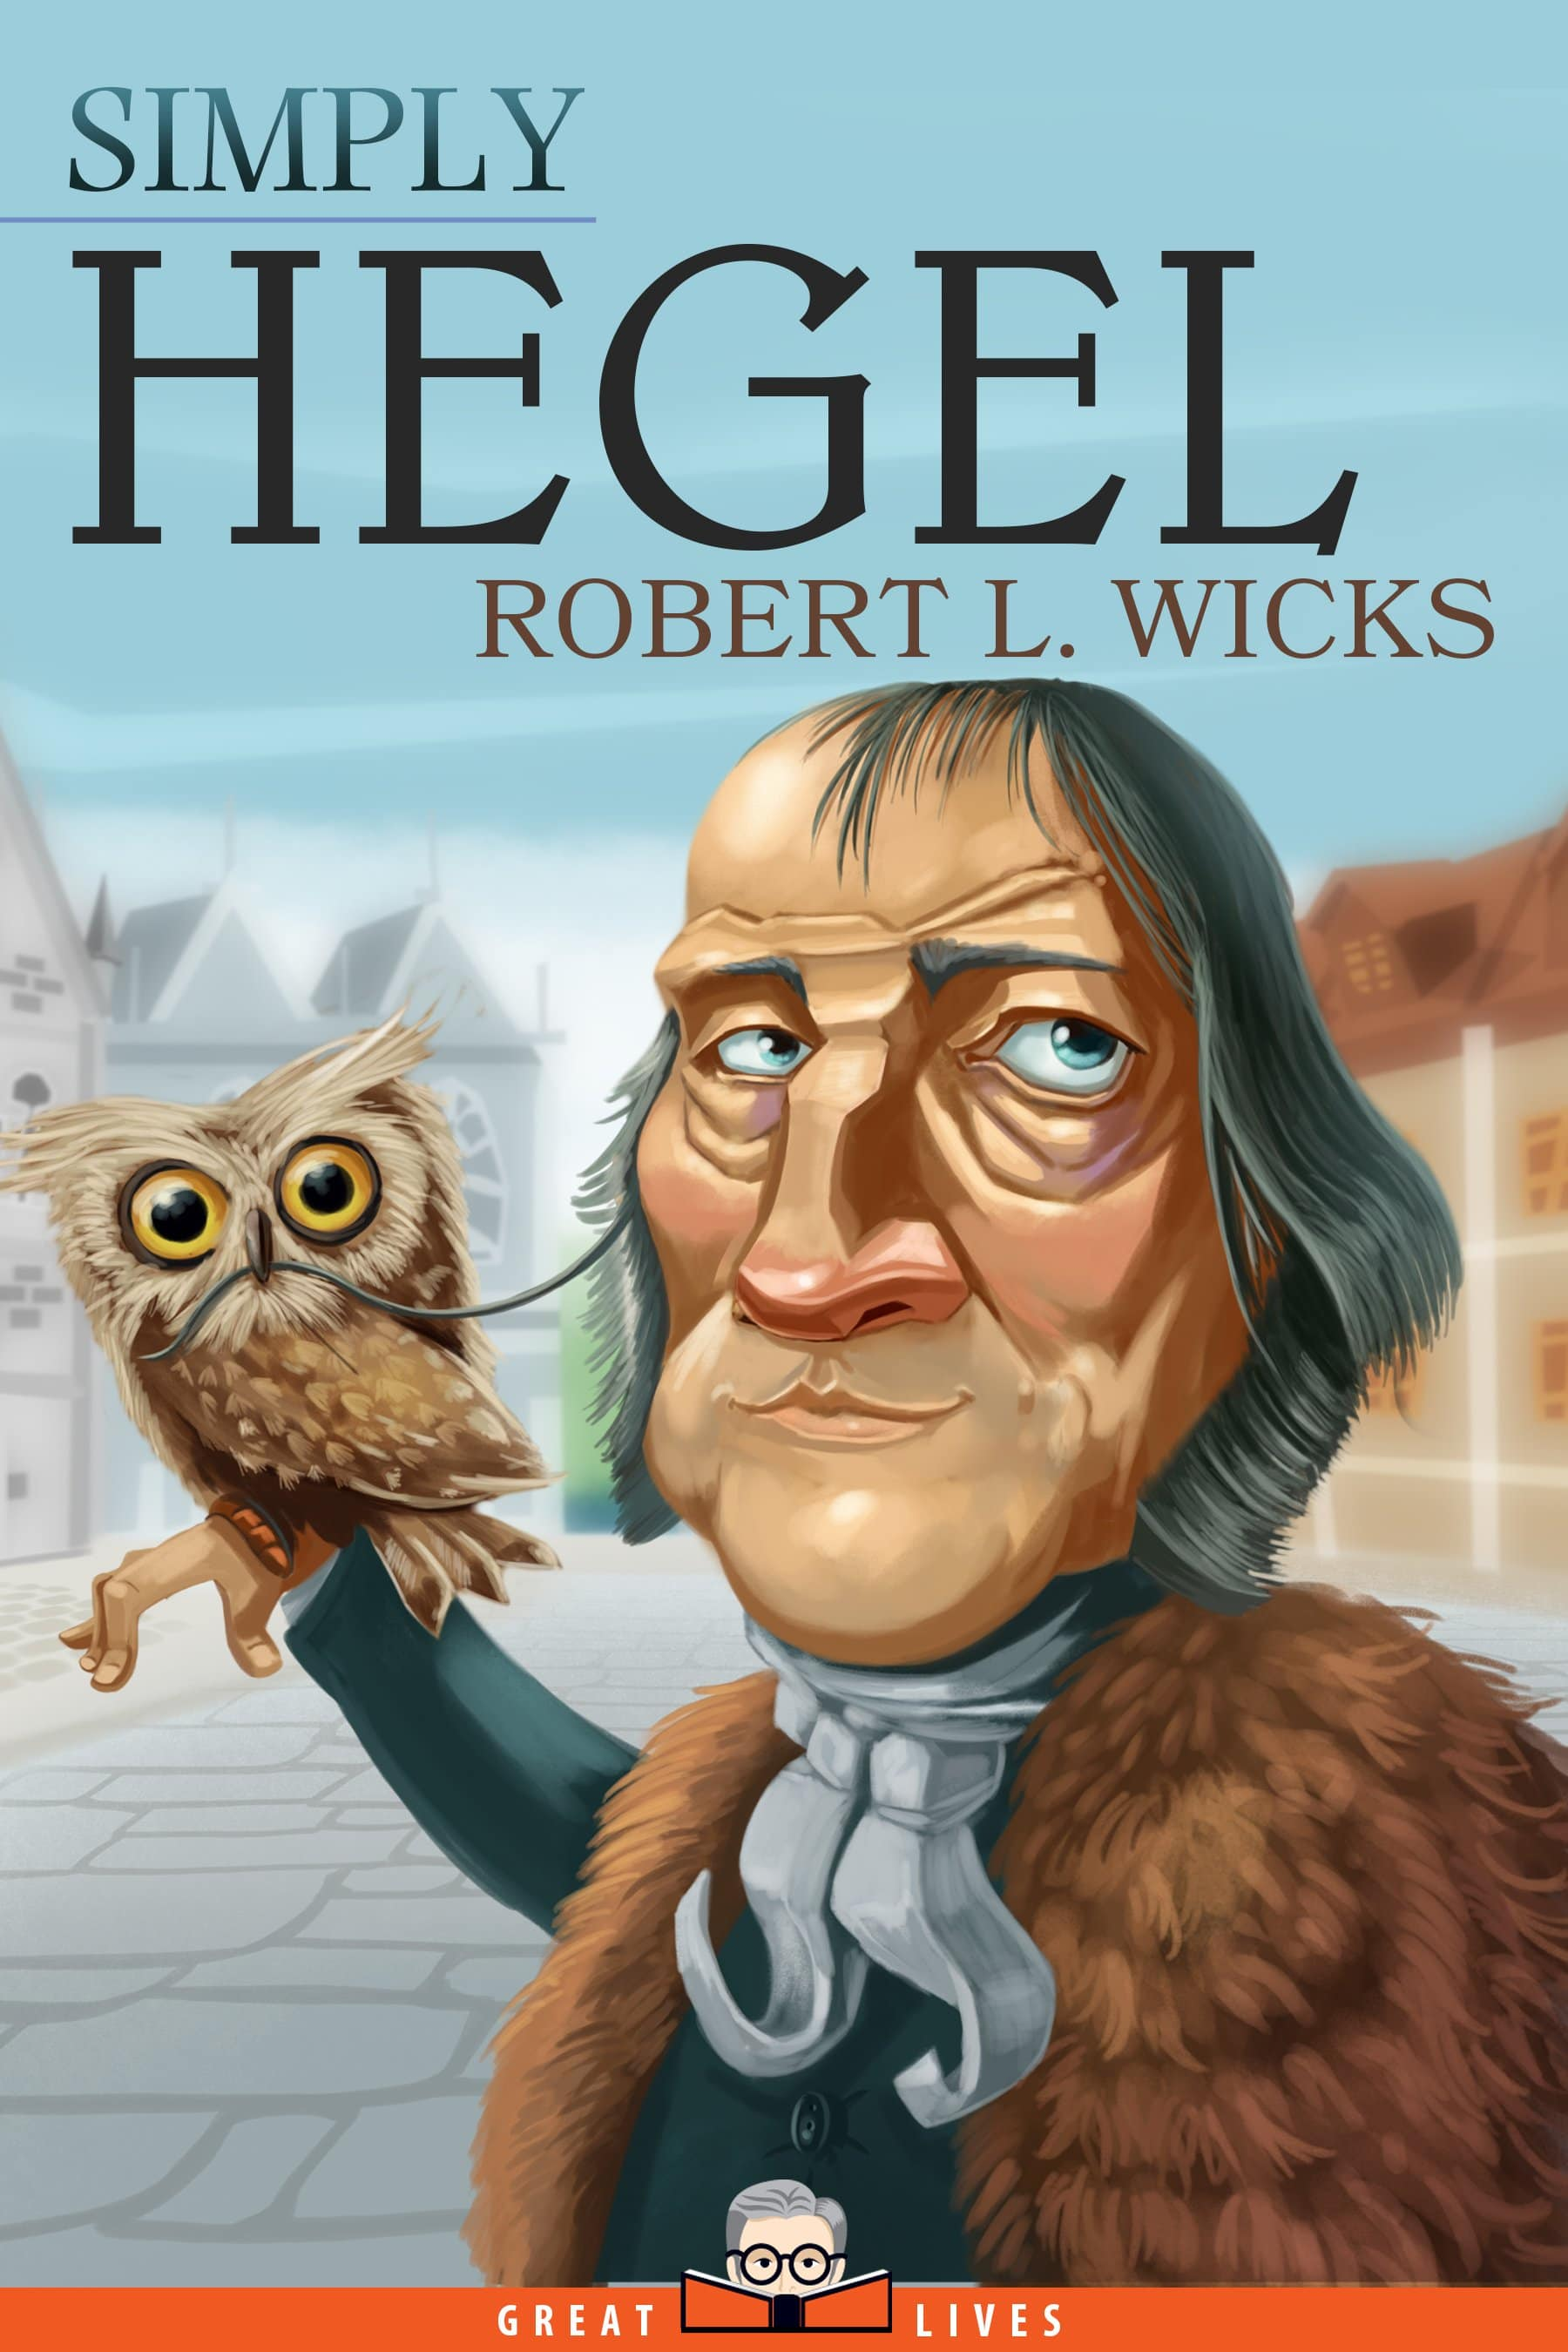 4f3fa36cdfccf0dd96969d811411d10b 2 - New Book on German Philosopher Georg Hegel Offers an Accessible and Engaging Introduction to the Philosopher's Life and Work